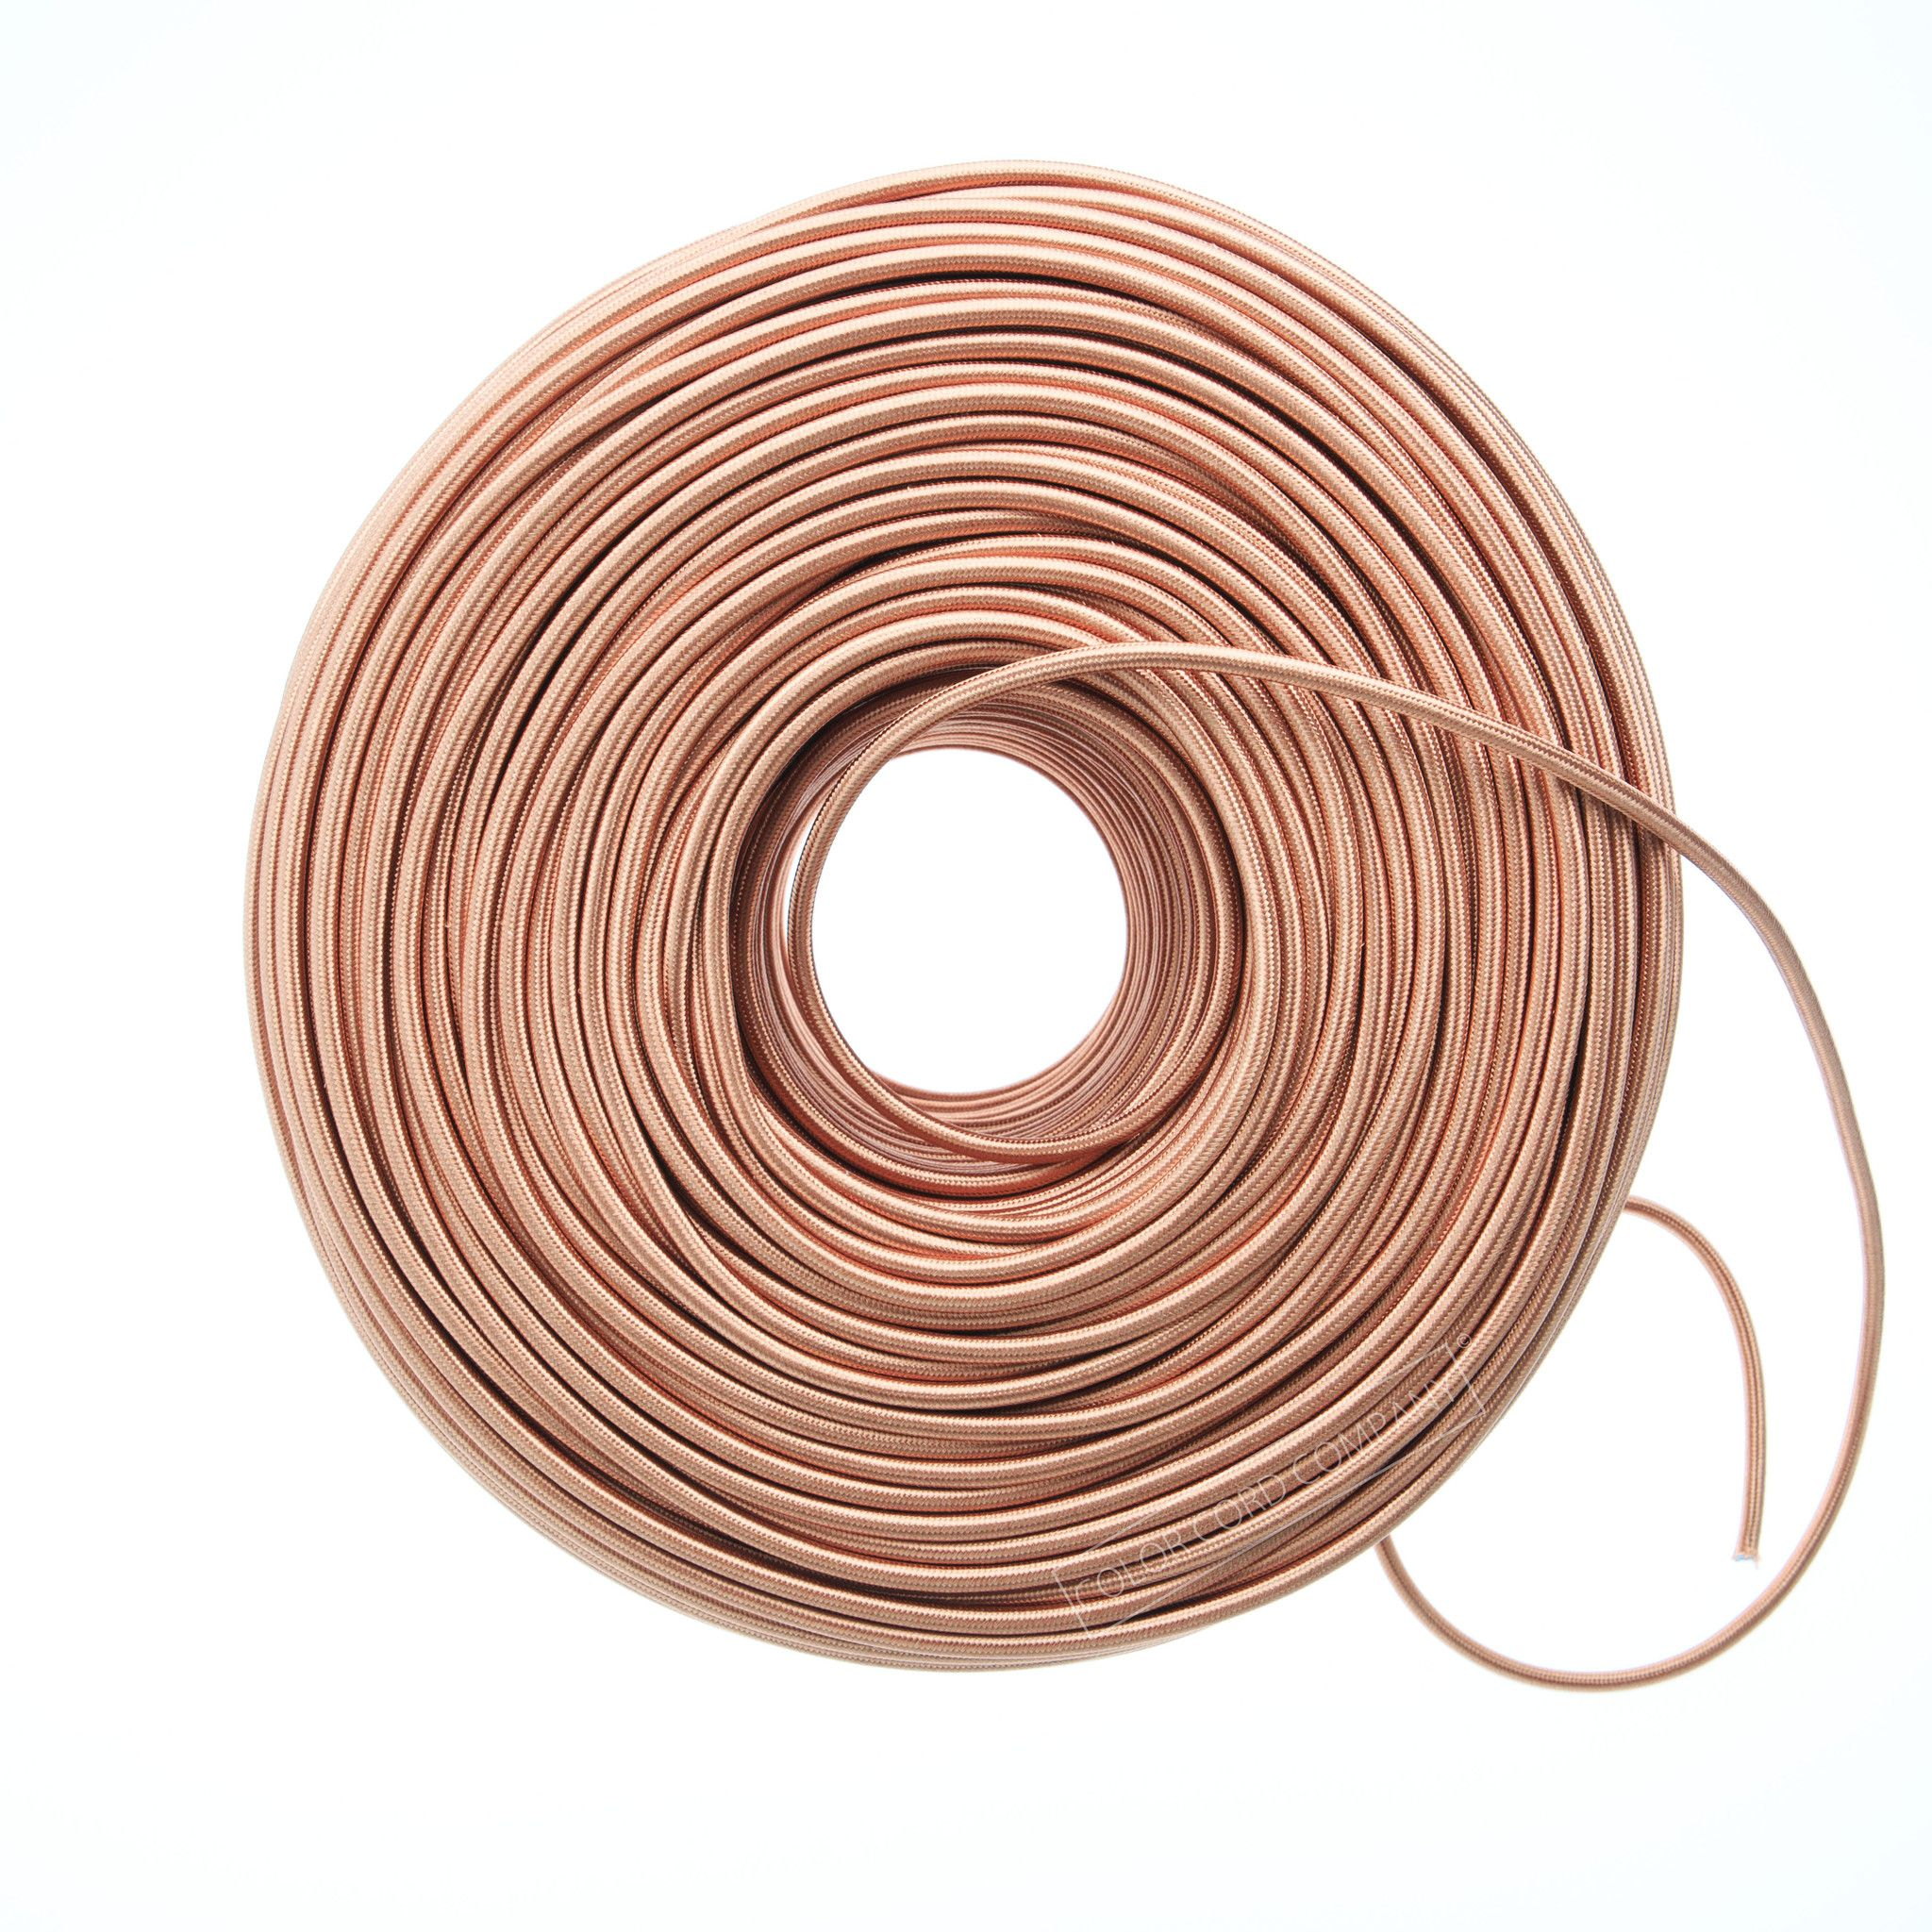 cloth covered wire copper penny color cord company rh colorcord com Home Cable Wiring Installation Home Electrical Wiring Diagrams